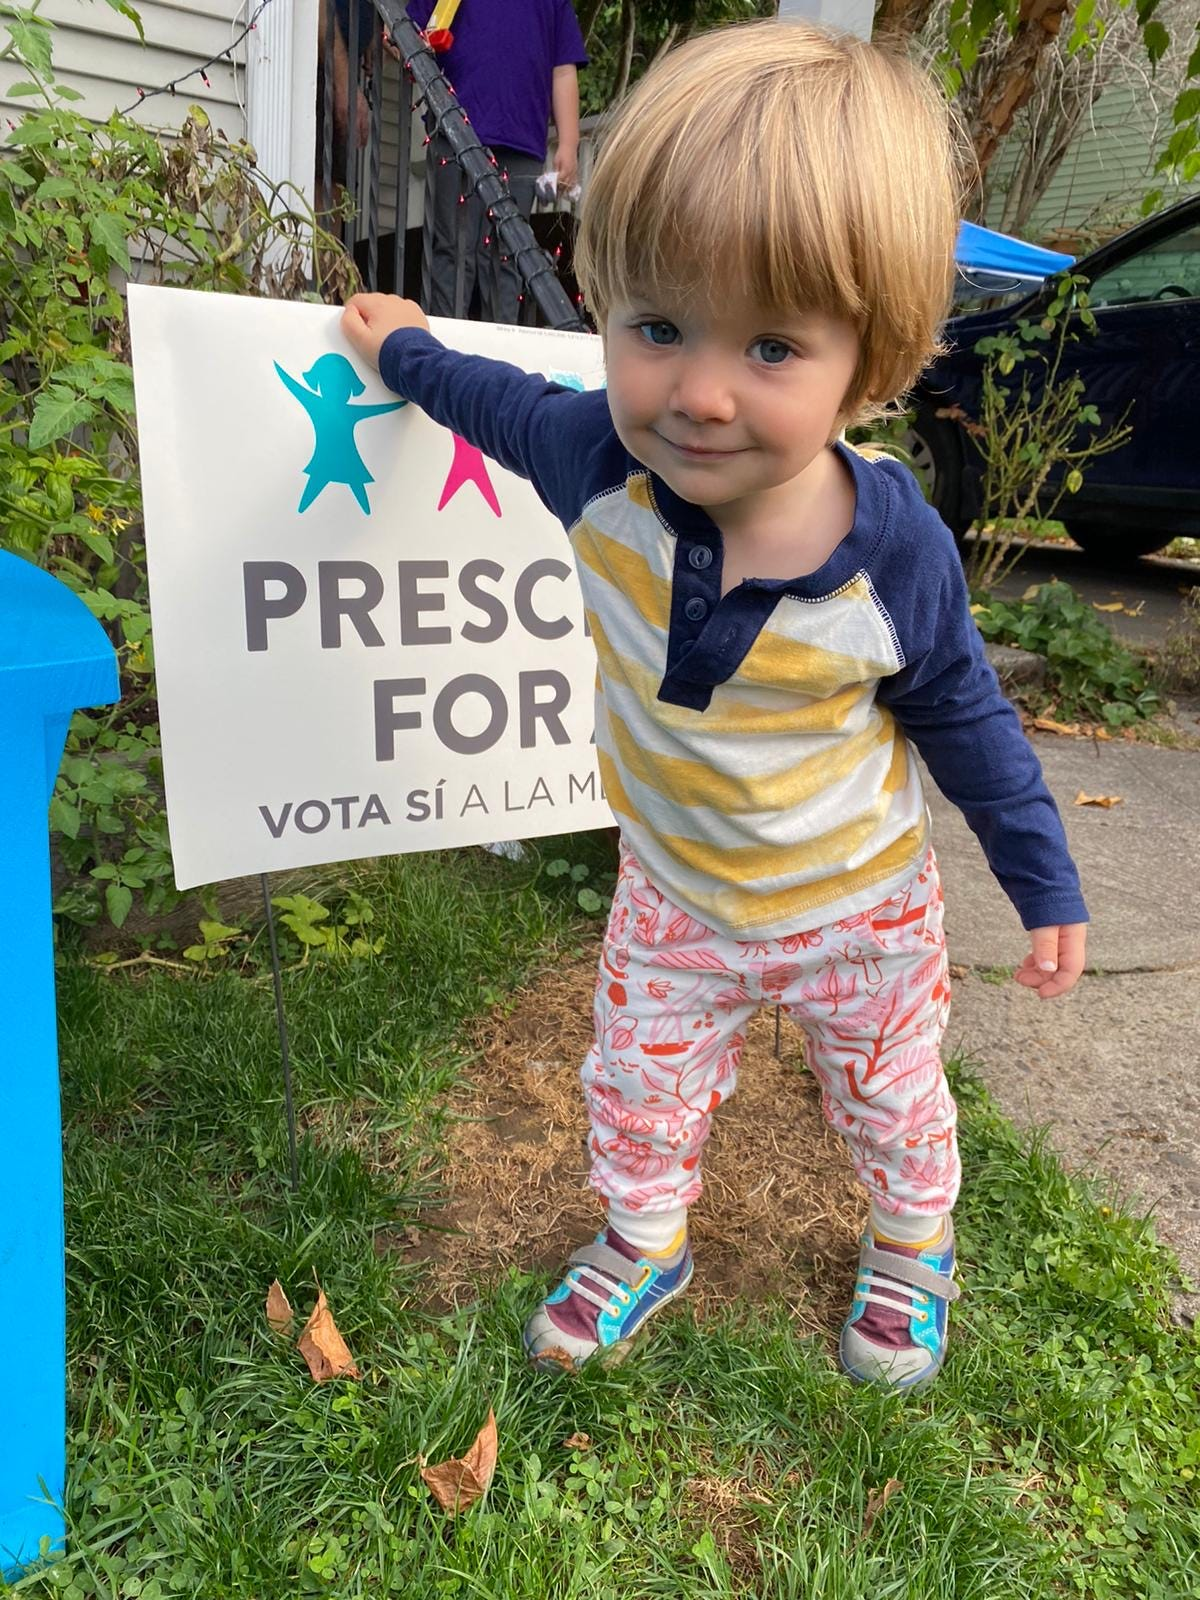 Parents can't afford daycare and preschool. Oregon voters are giving it to kids for free.